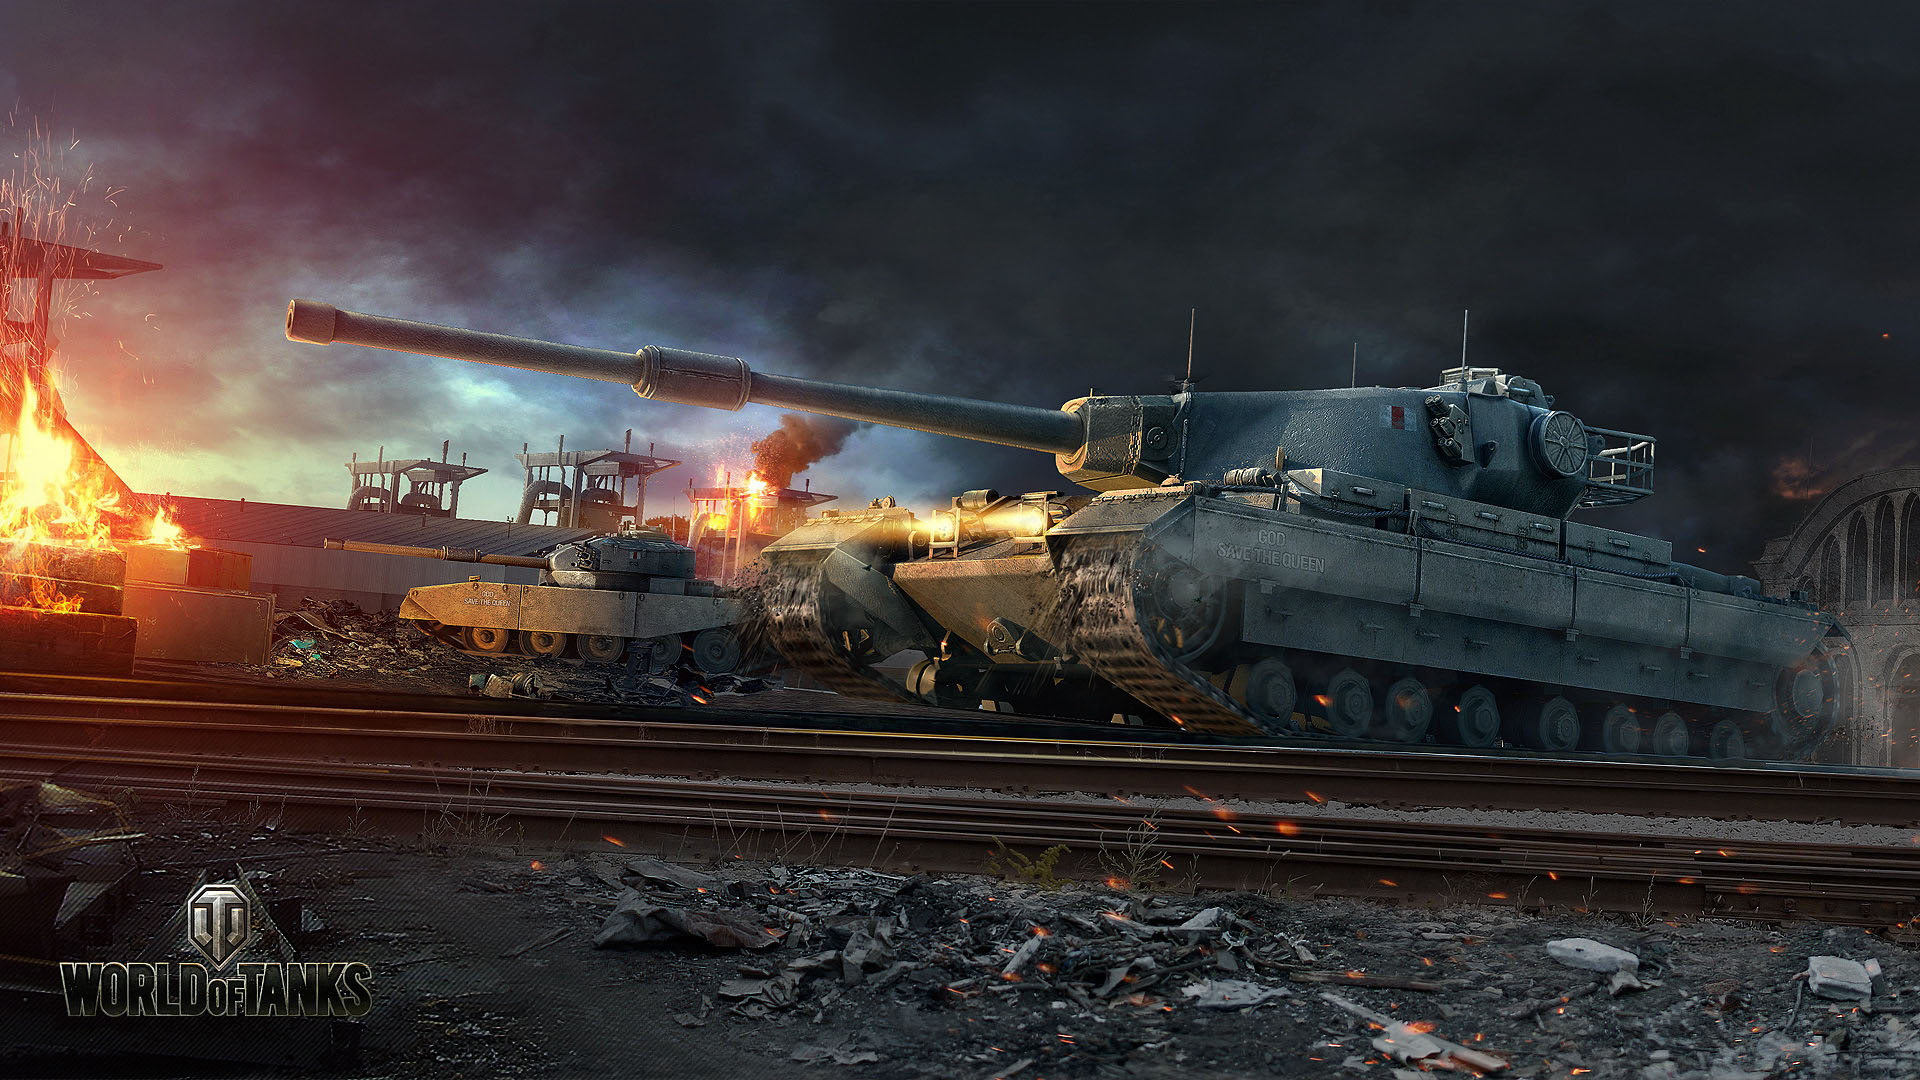 World-of-Tanks-Full-HD-http-and-backgrounds-net-world-of-tanks-full-hd-wallpa-wallpaper-wp38012220